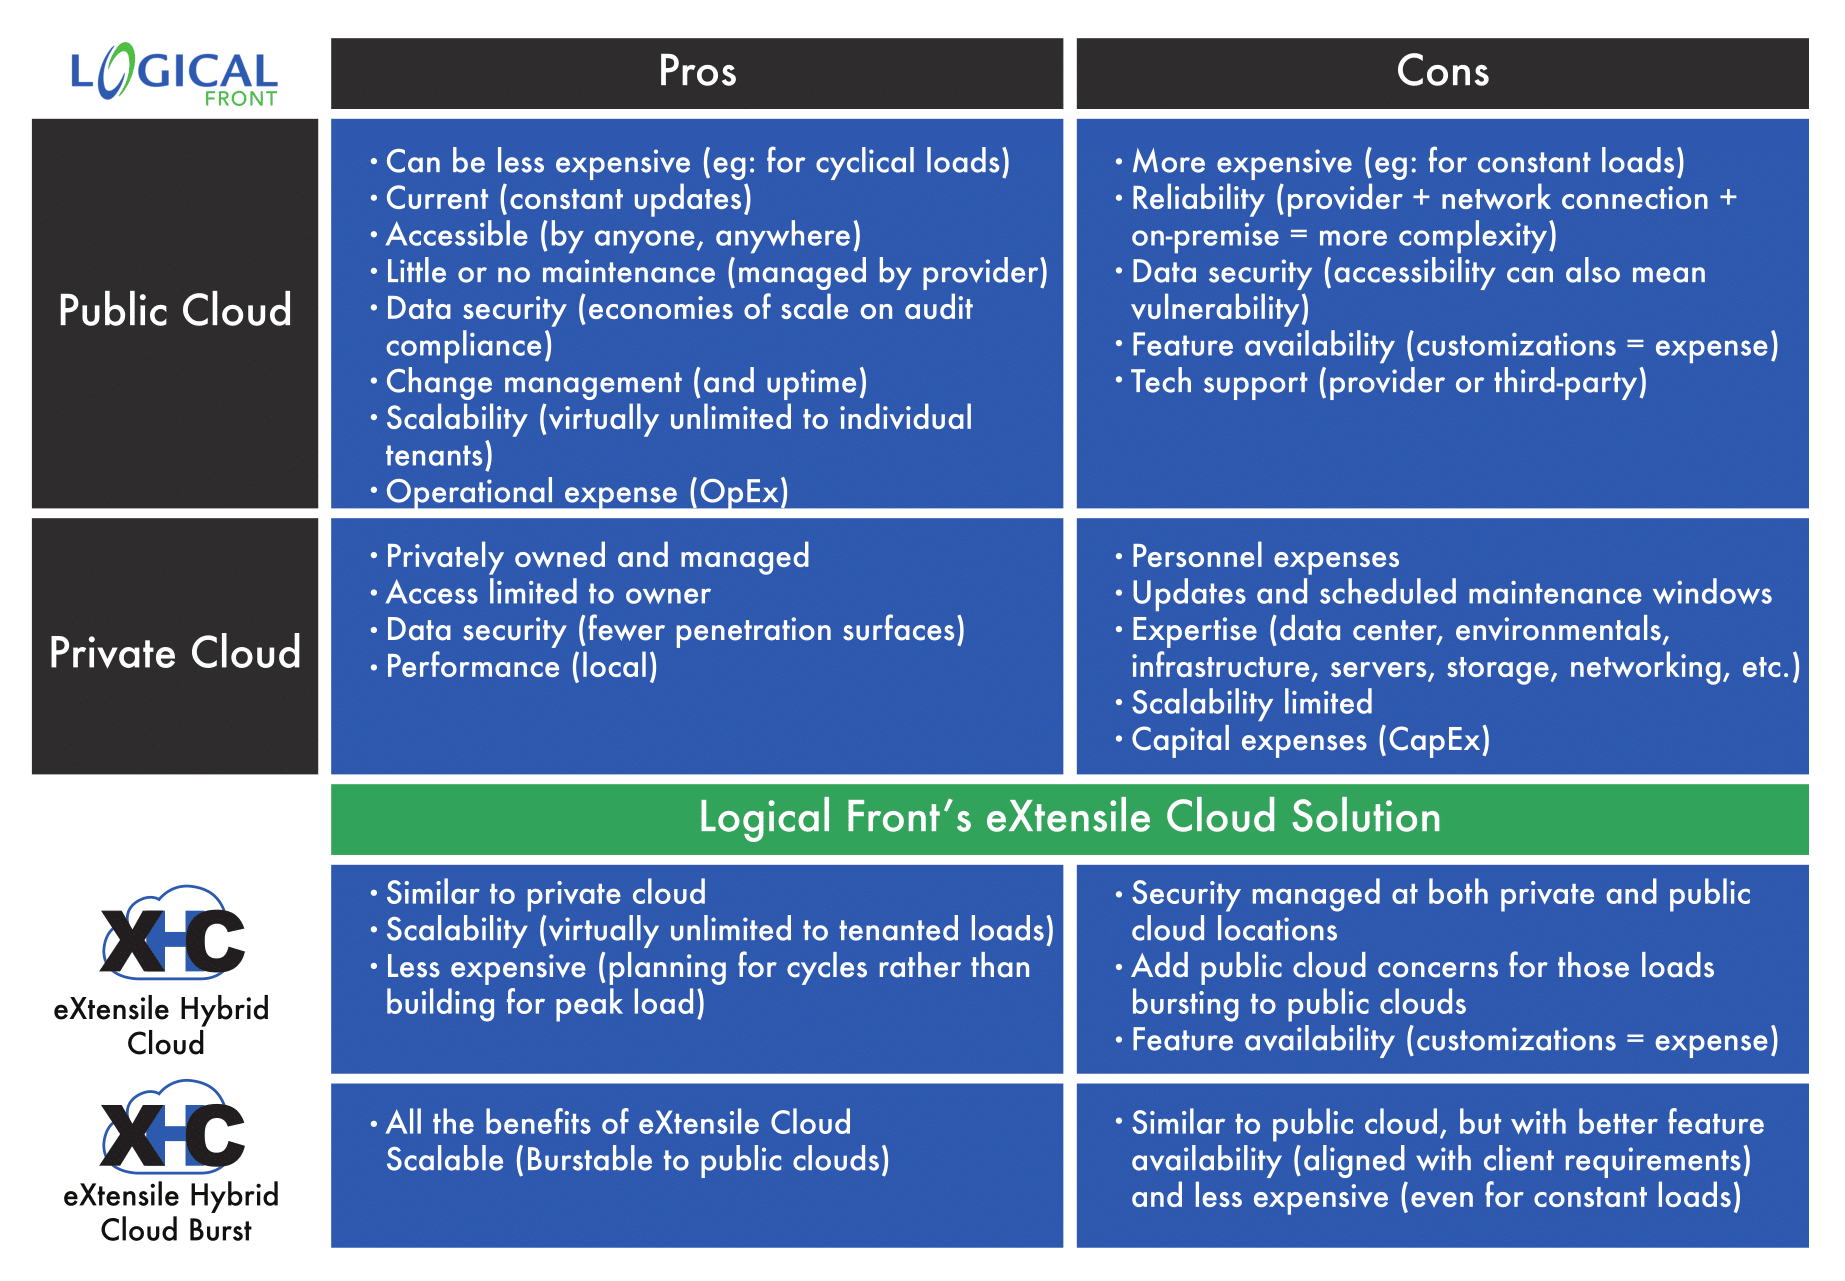 eXtensile Hybrid Cloud Pro/Con Chart detailing the eXtensile Hybrid Cloud difference.